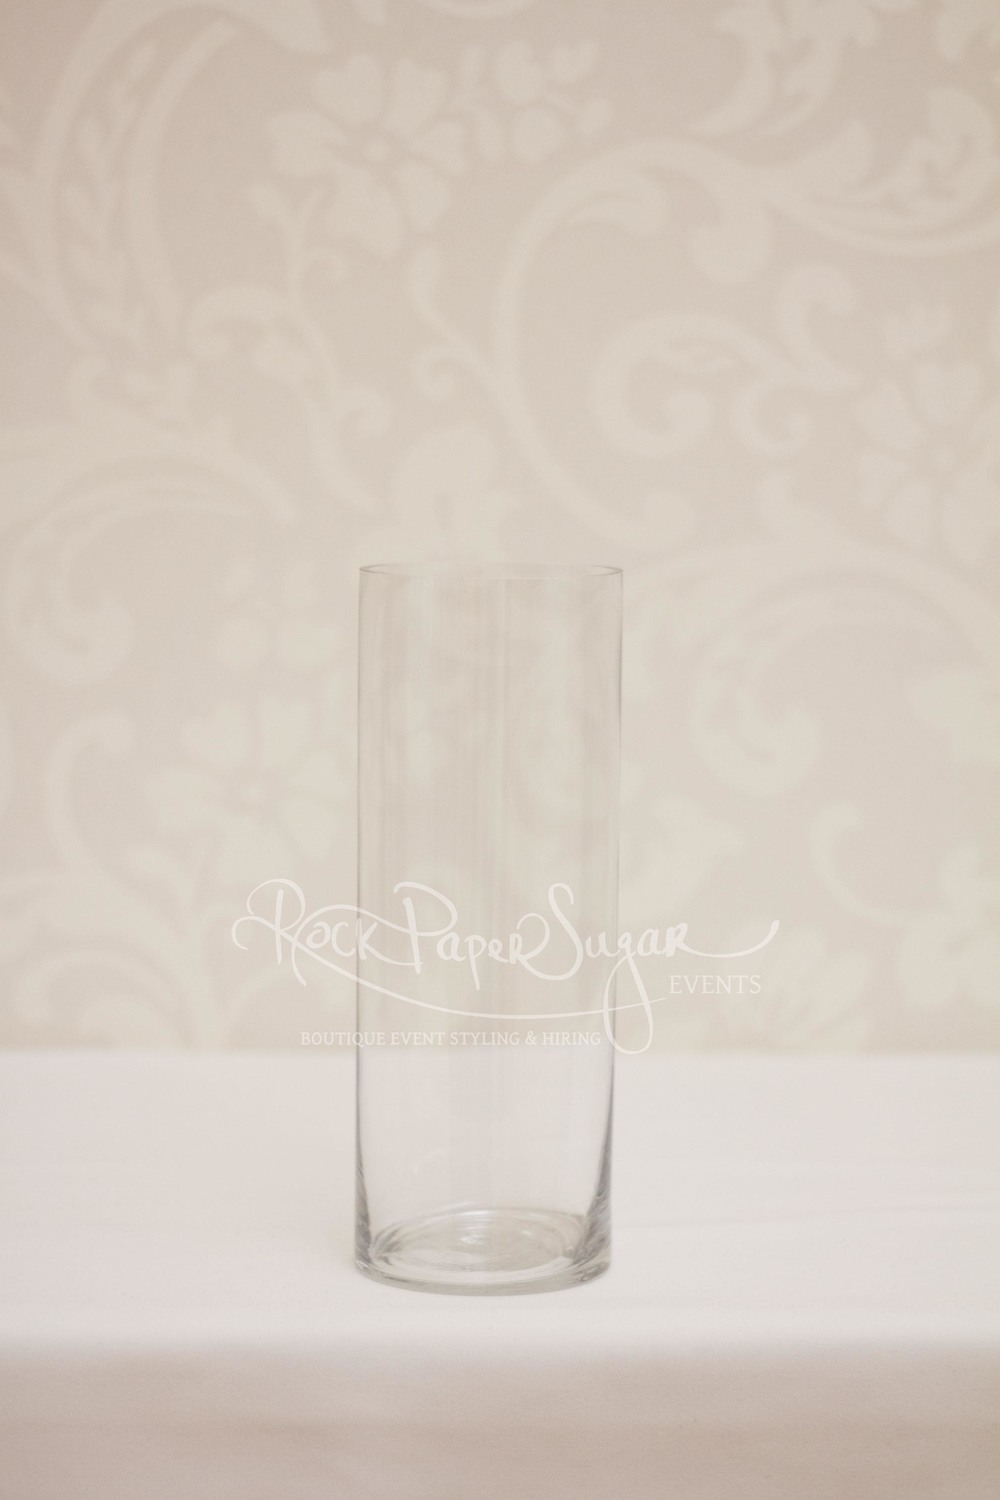 Rock Paper Sugar Events Glassware 008.jpg